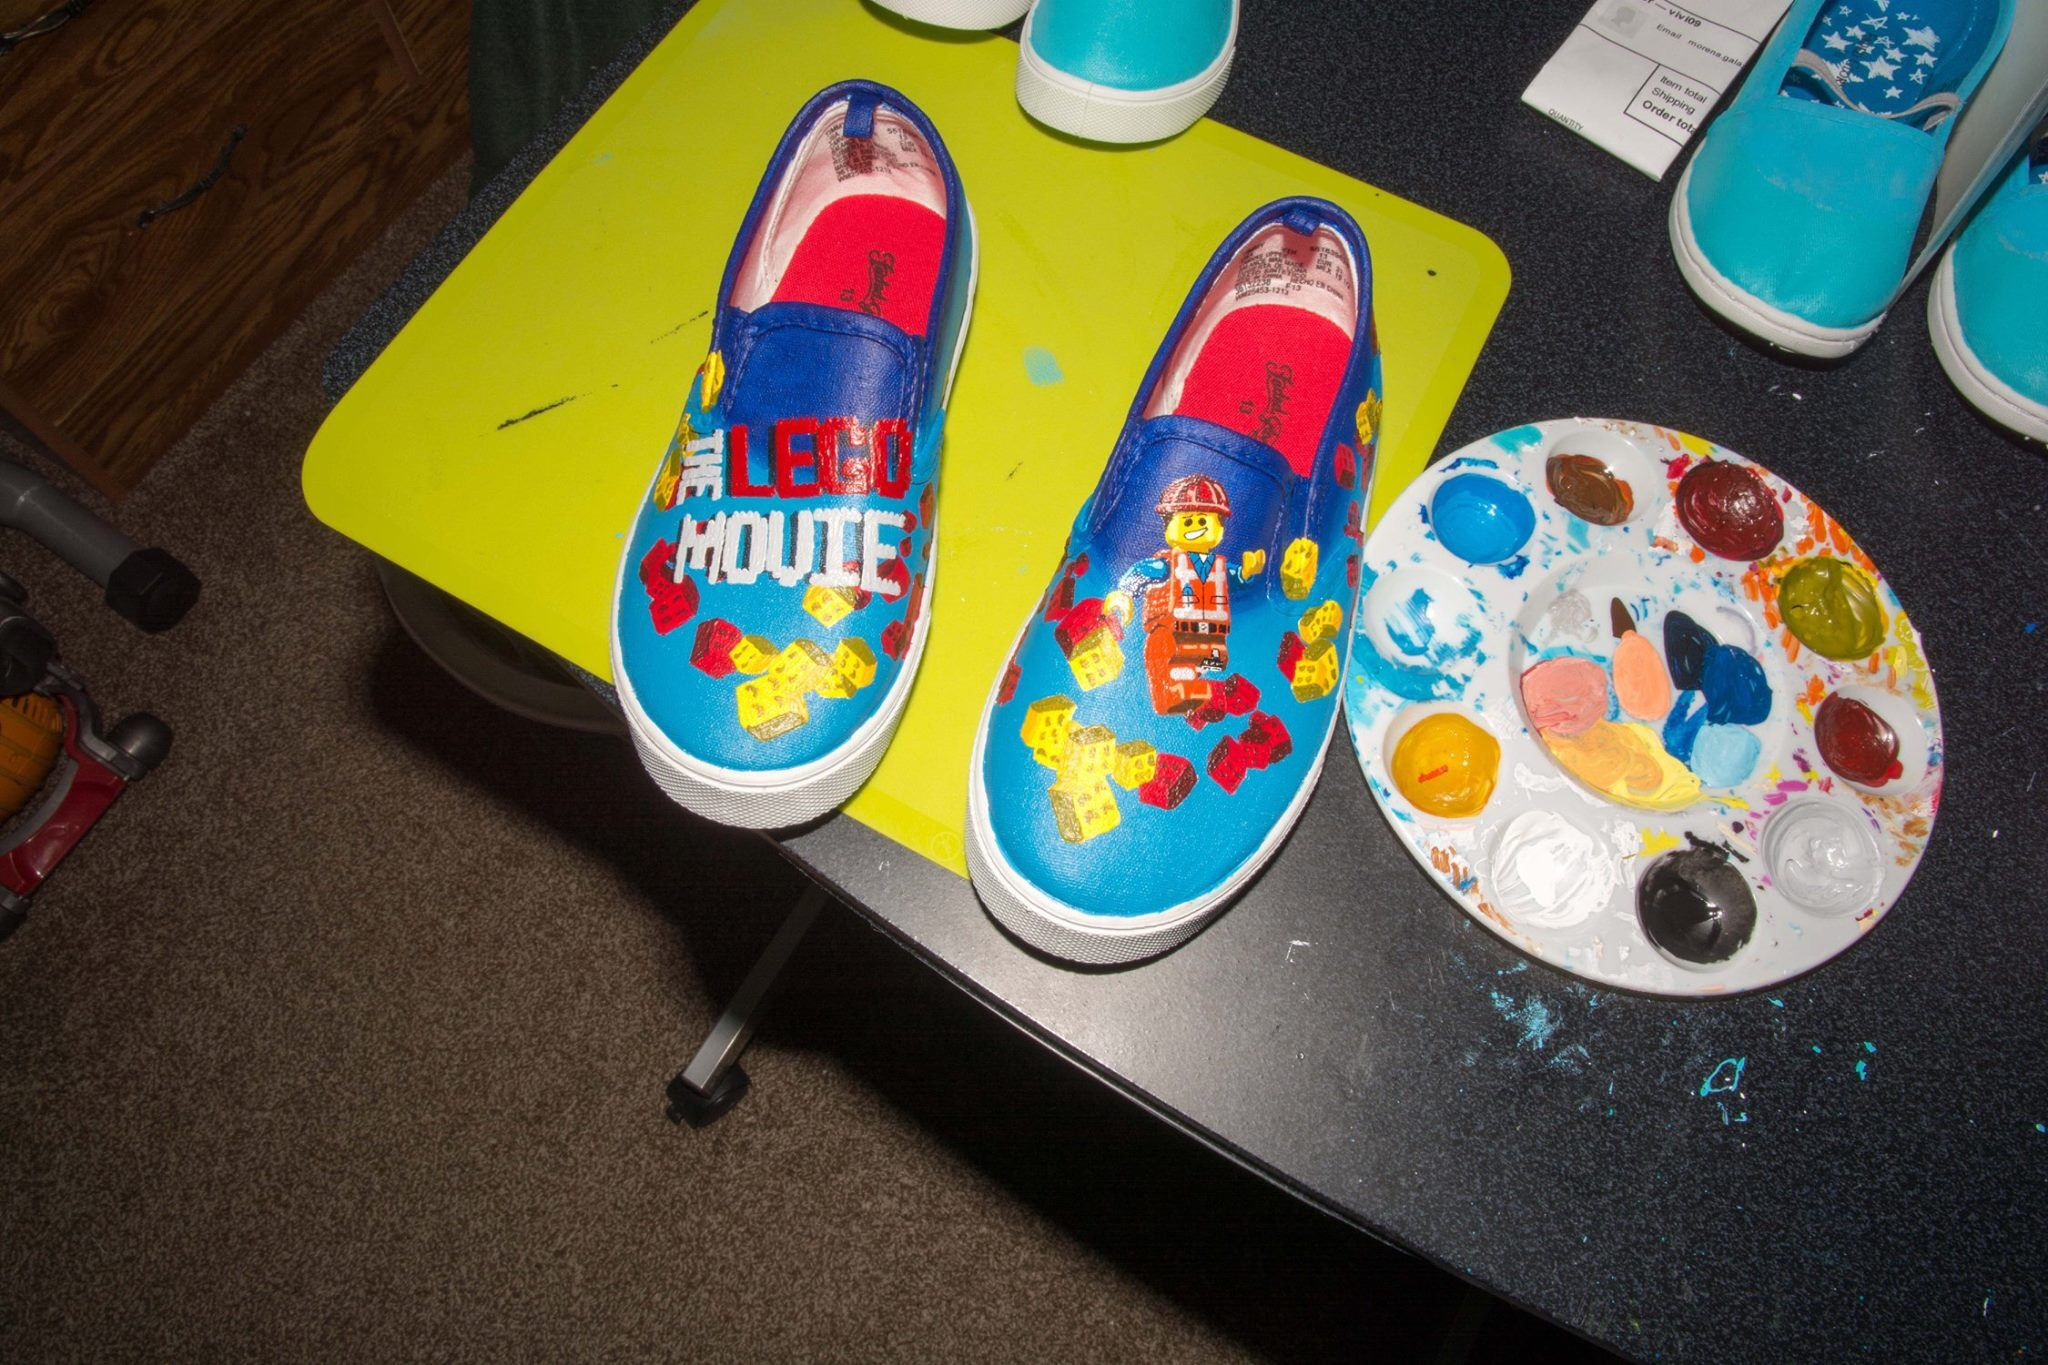 The Lego Movie Painted Shoes Painted Shoes Custom Shoes Shoe Art